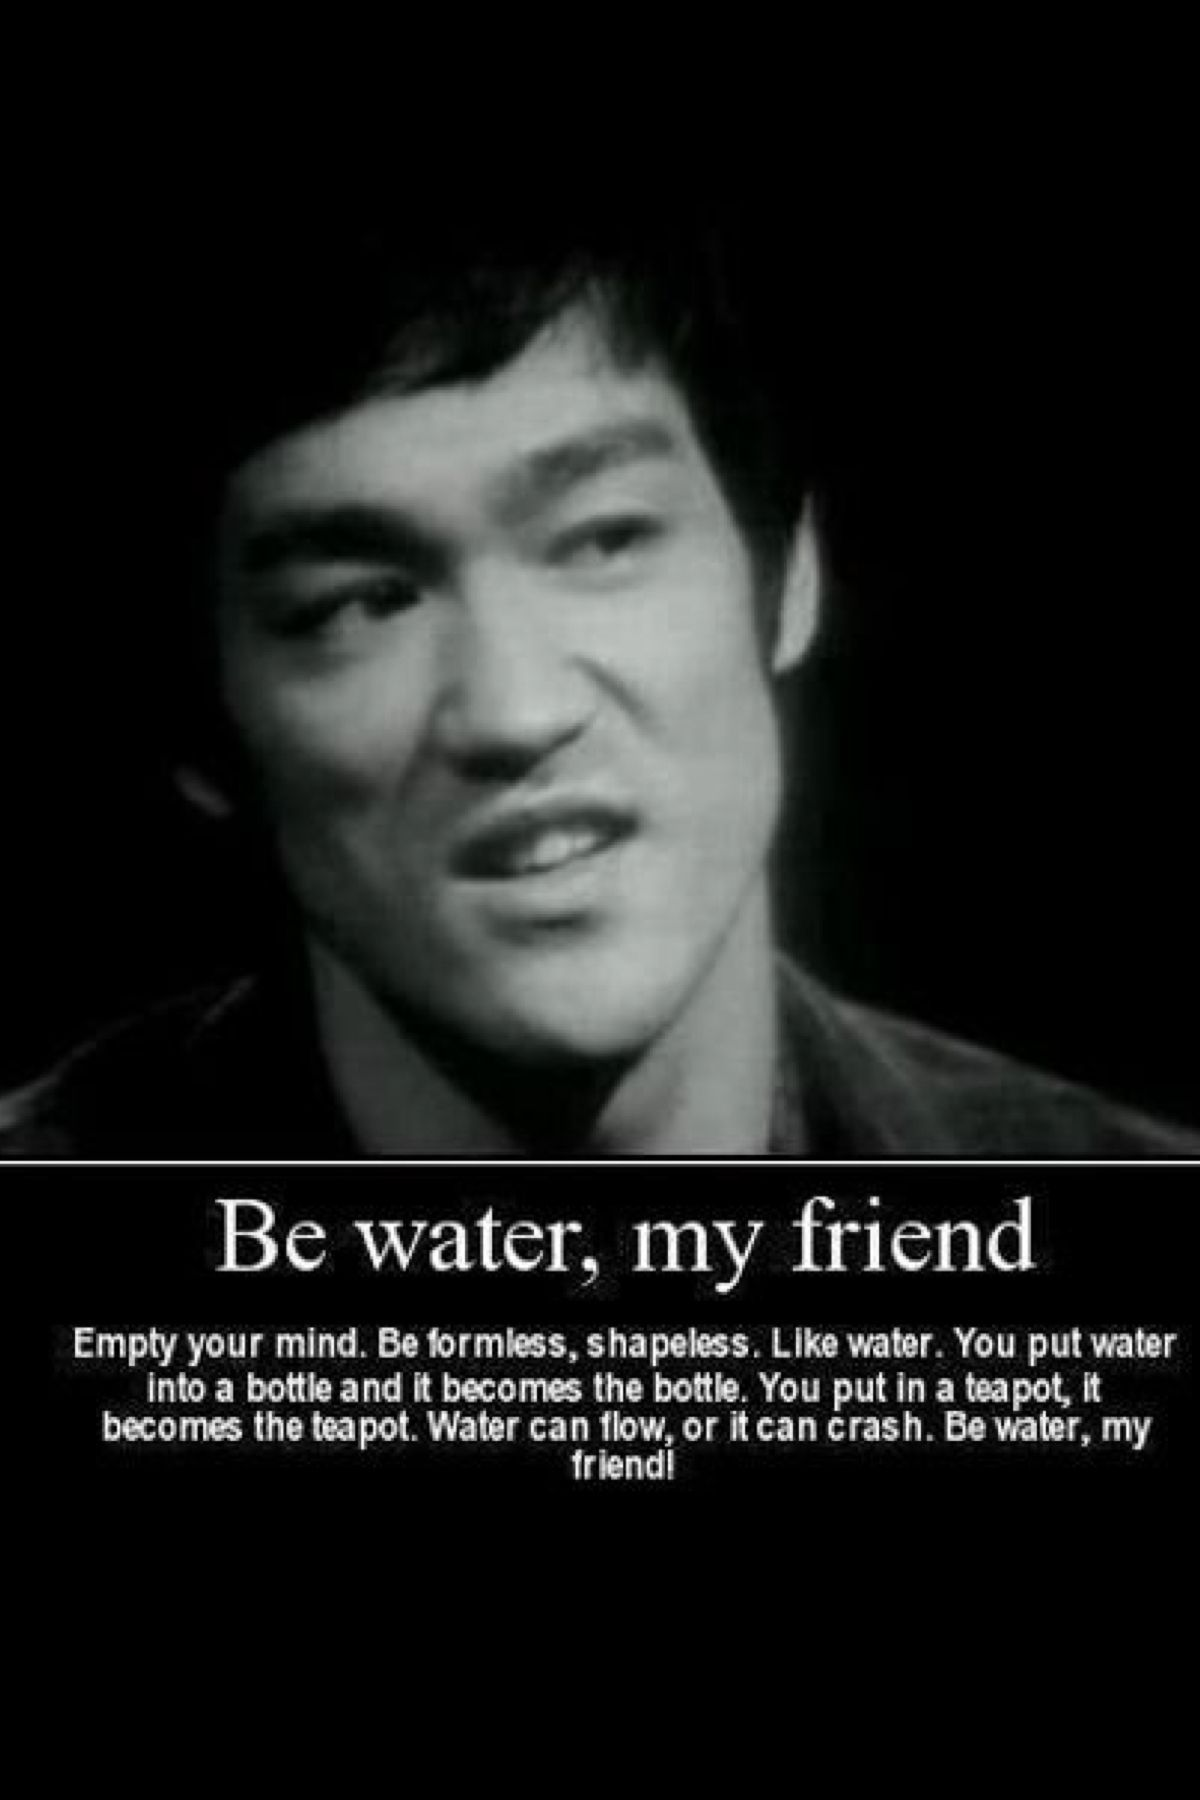 Be Like Water Bruce Lee S Quotes Poster 12x18 Inch Be Flexible As Water By Clicking Here Quotes Bruc Bruce Lee Quotes Inspirational Quotes Wisdom Quotes